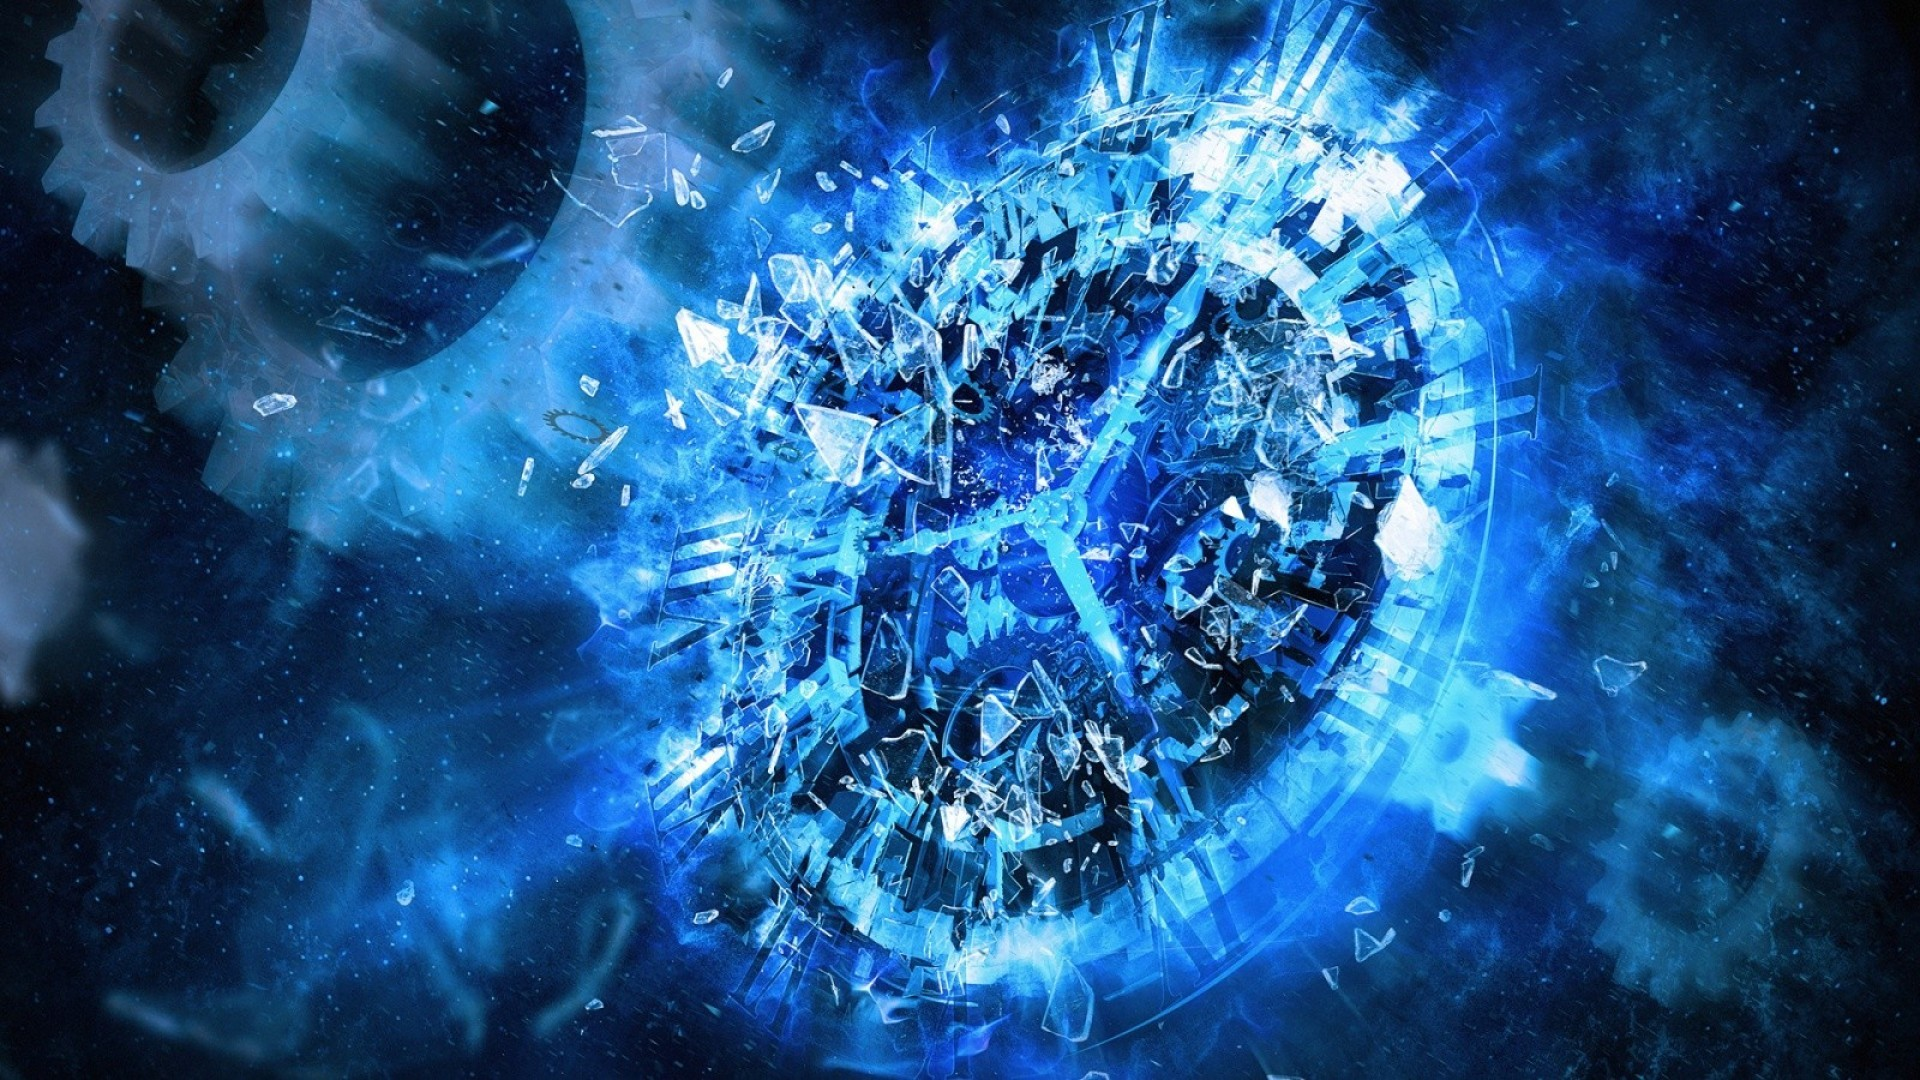 1920x1080 widescreen blue clock abstract hd desktop wallpaper